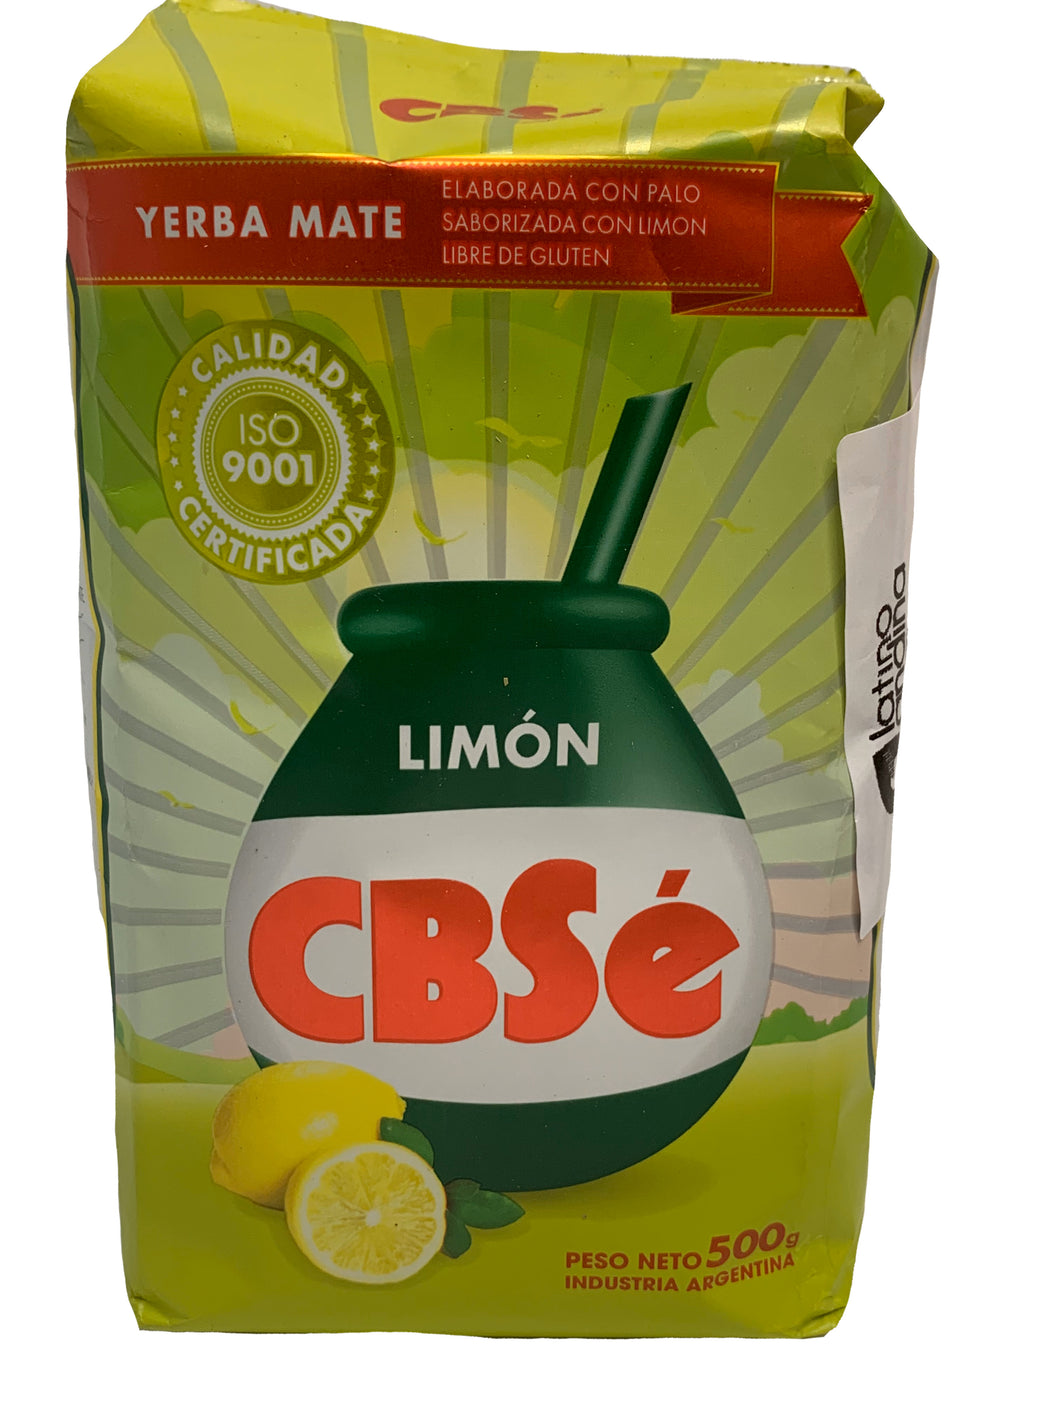 CBSE Lemon Yerba Mate 500g